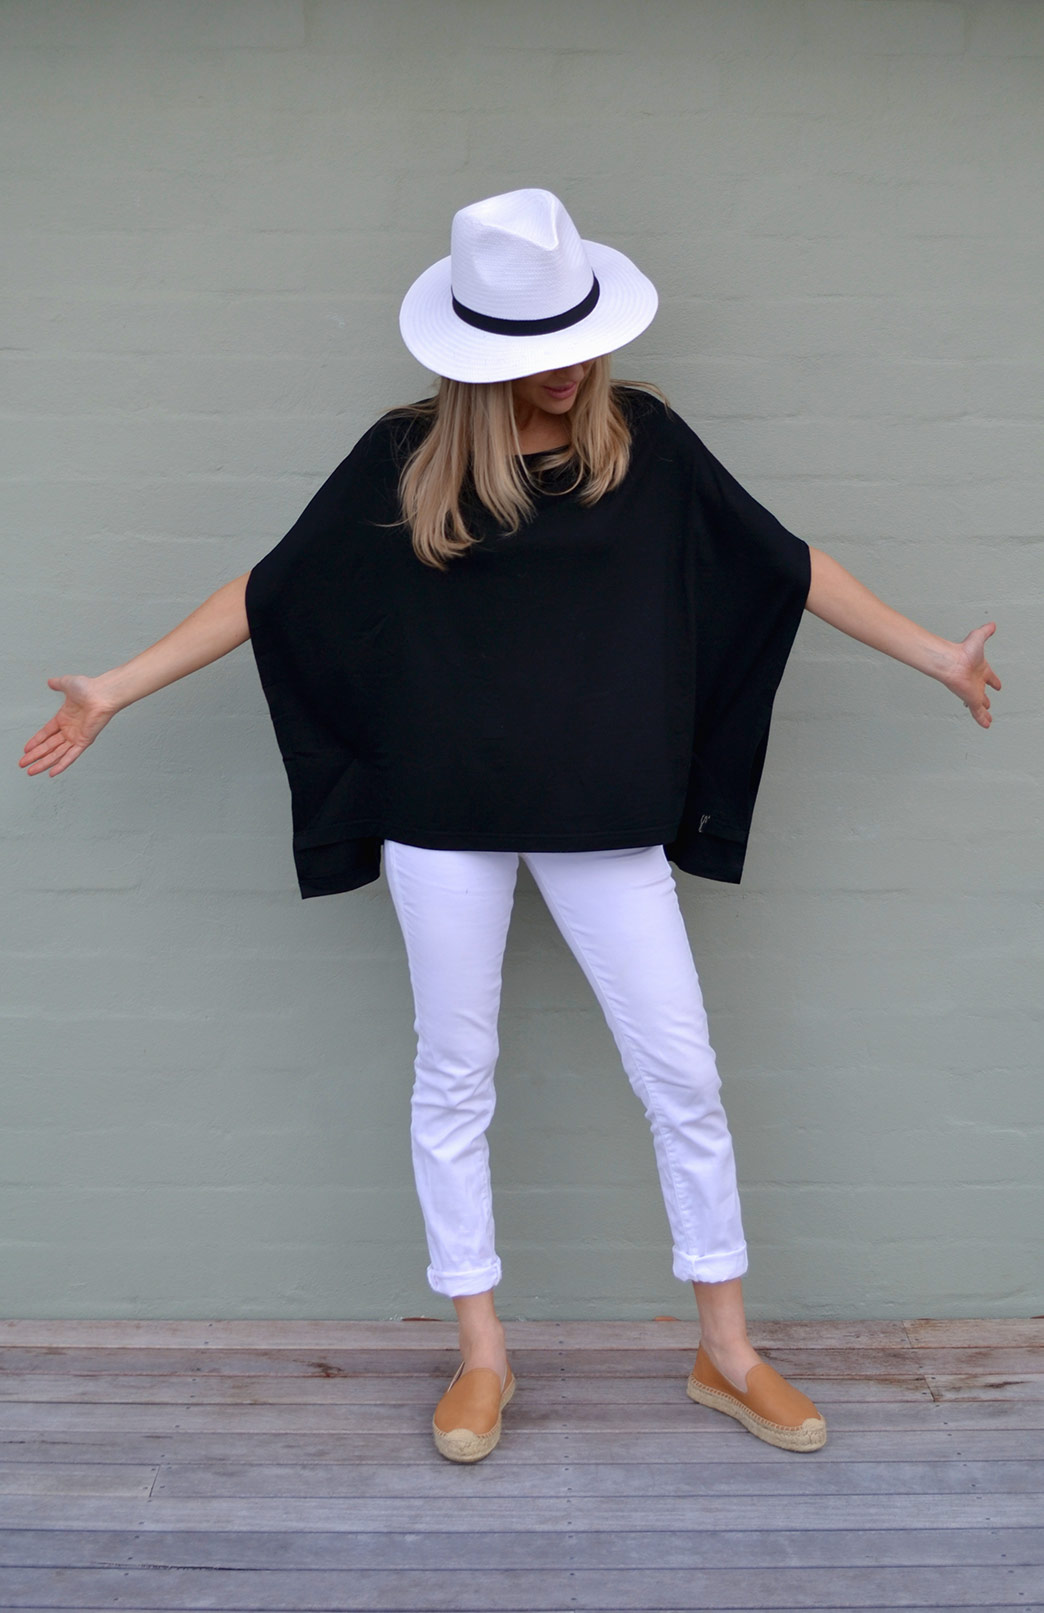 Spacey Top - Women's Black Merino Wool Poncho Style Loose Fit Fashion Top - Smitten Merino Tasmania Australia